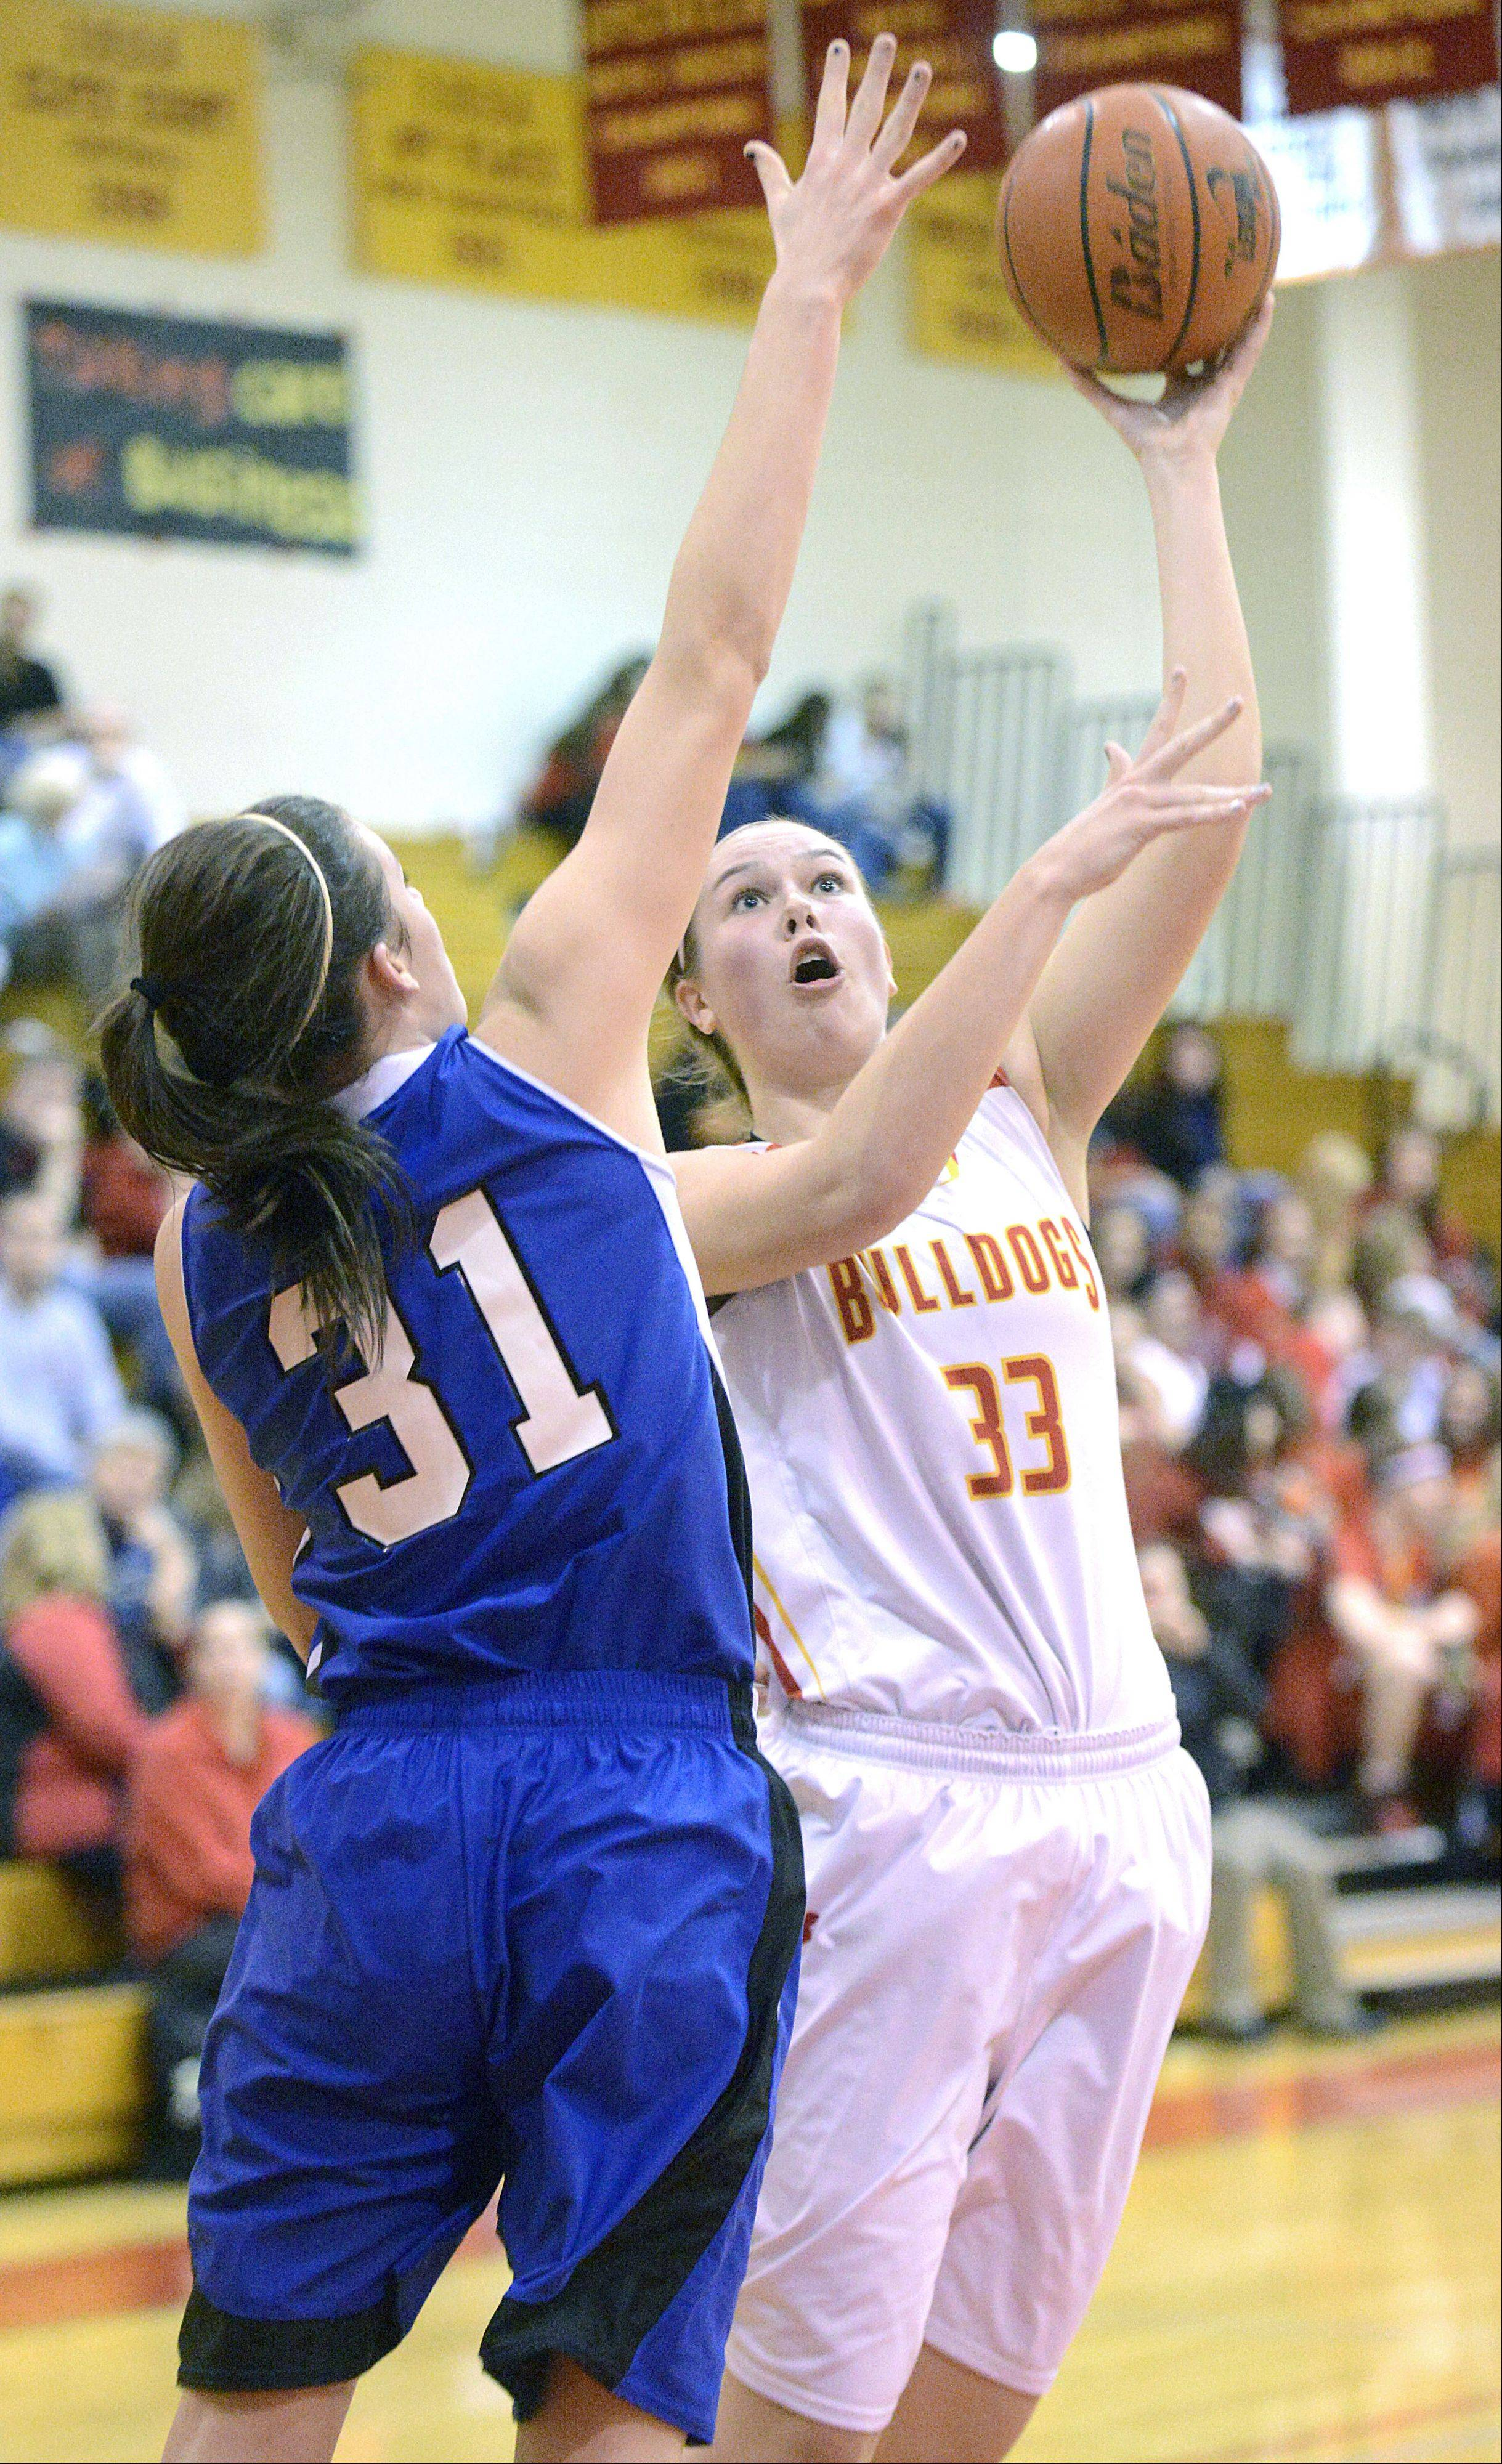 Geneva's Sami Pawlak attempts to block a shot by Batavia's Erin Bayram in the second quarter on Friday, January 11.